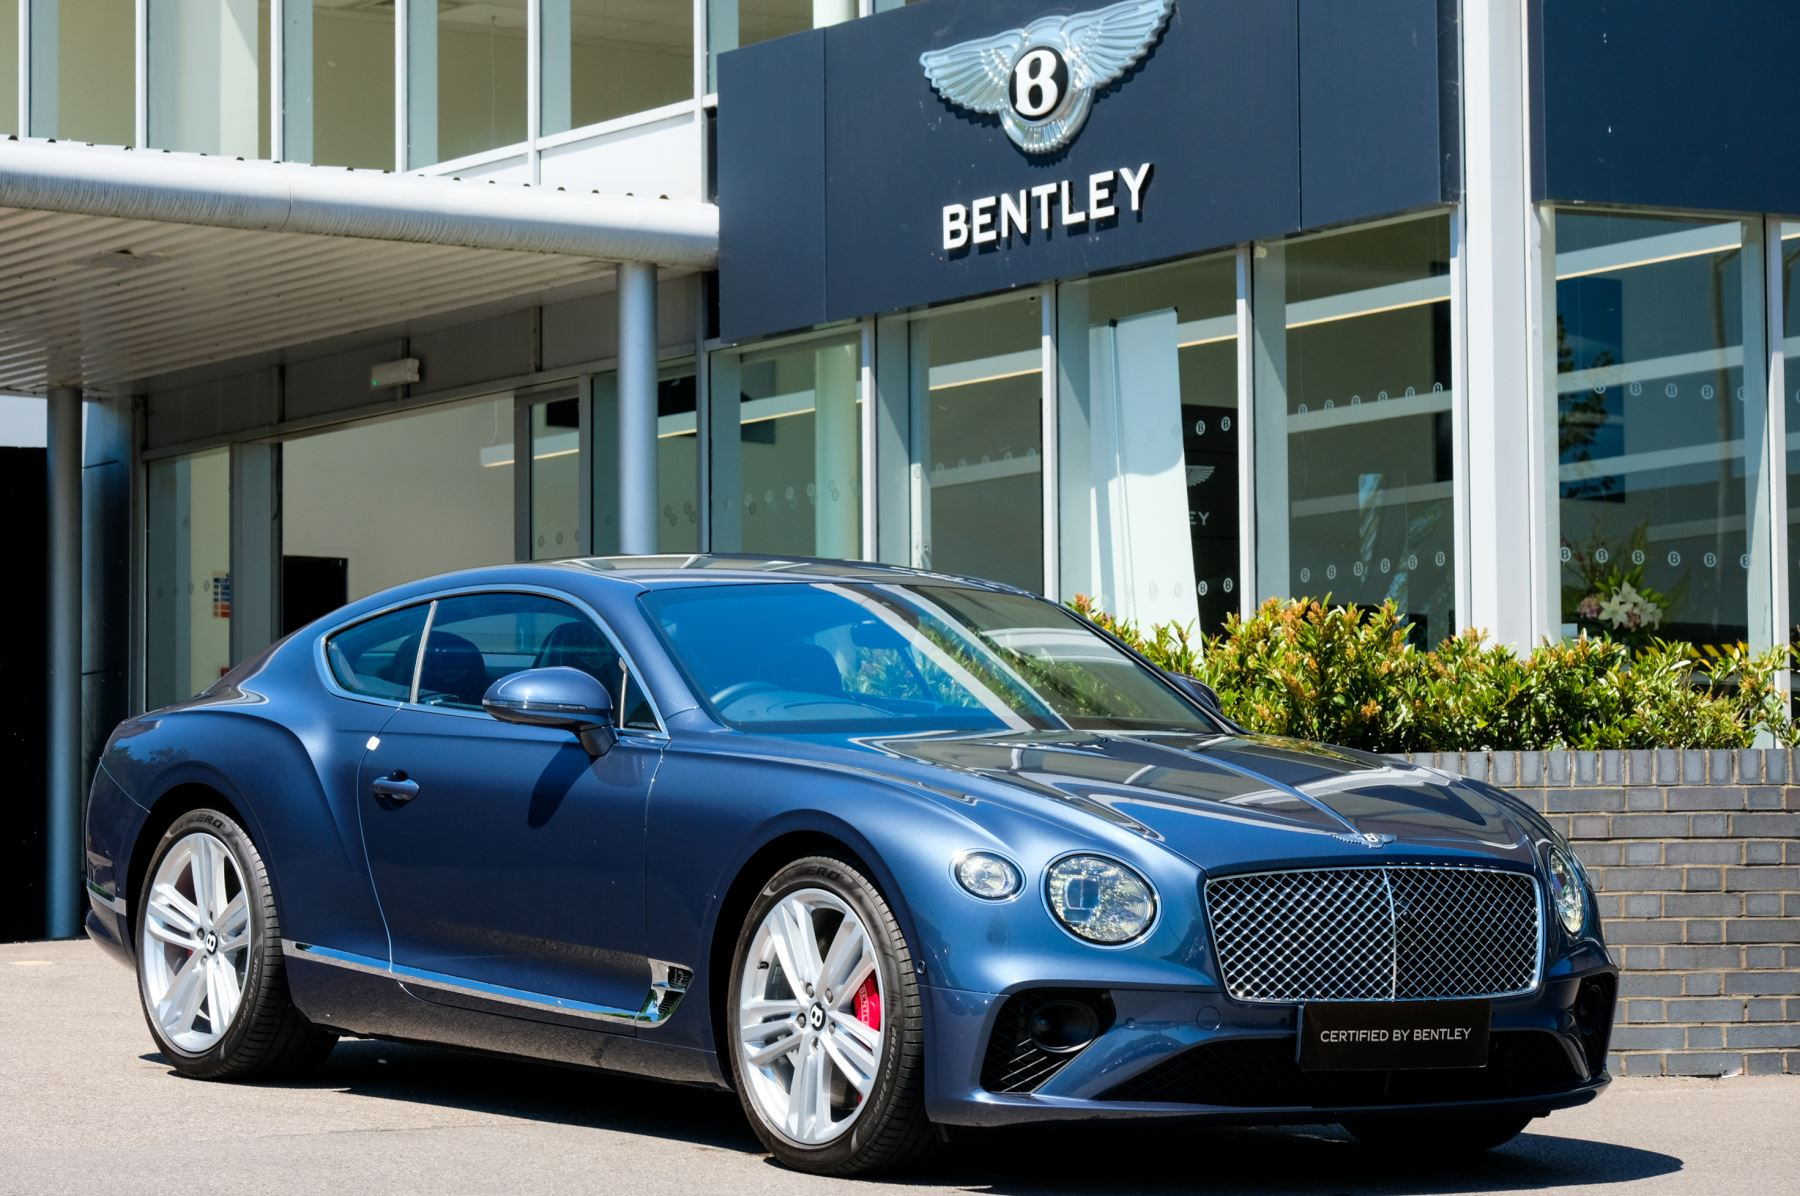 Bentley Continental GT 6.0 W12 - CITY + TOURING SPECIFICATION image 1